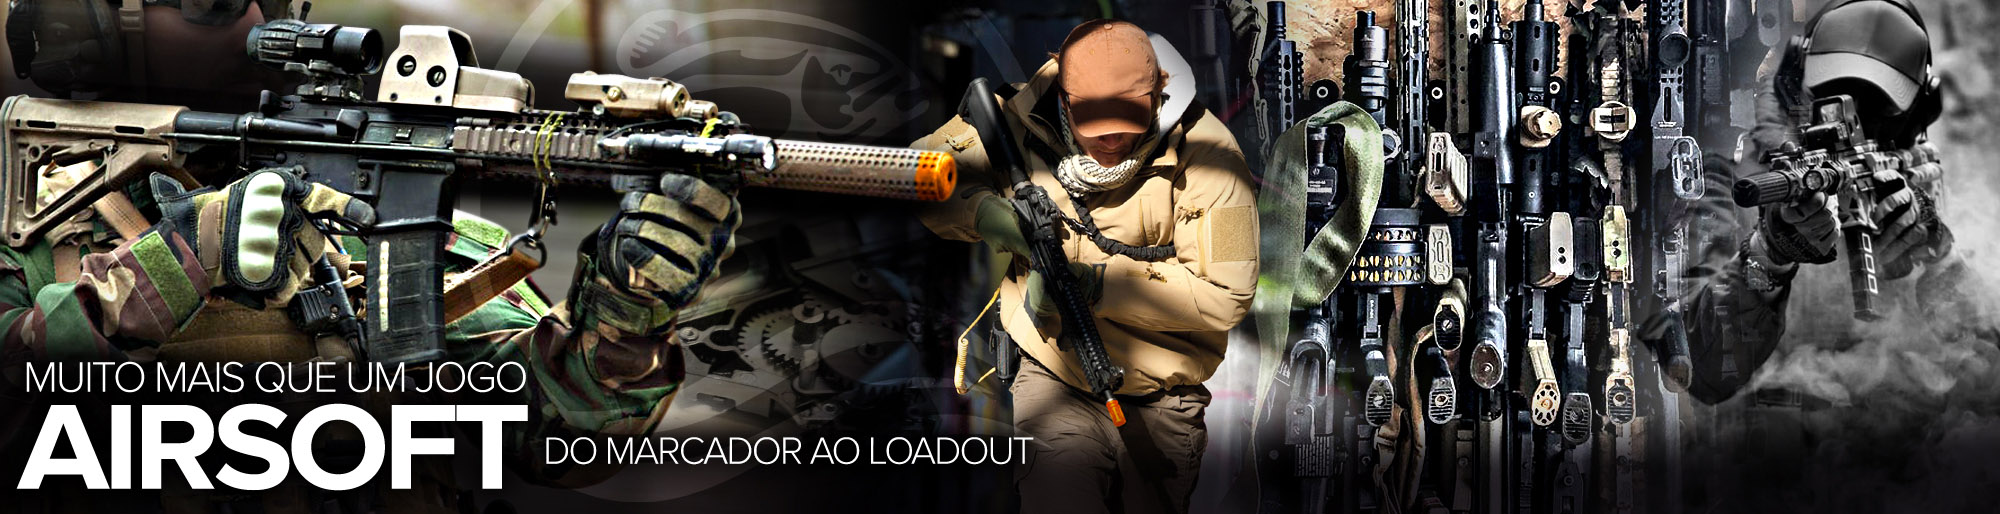 BANNER AIRSOFT